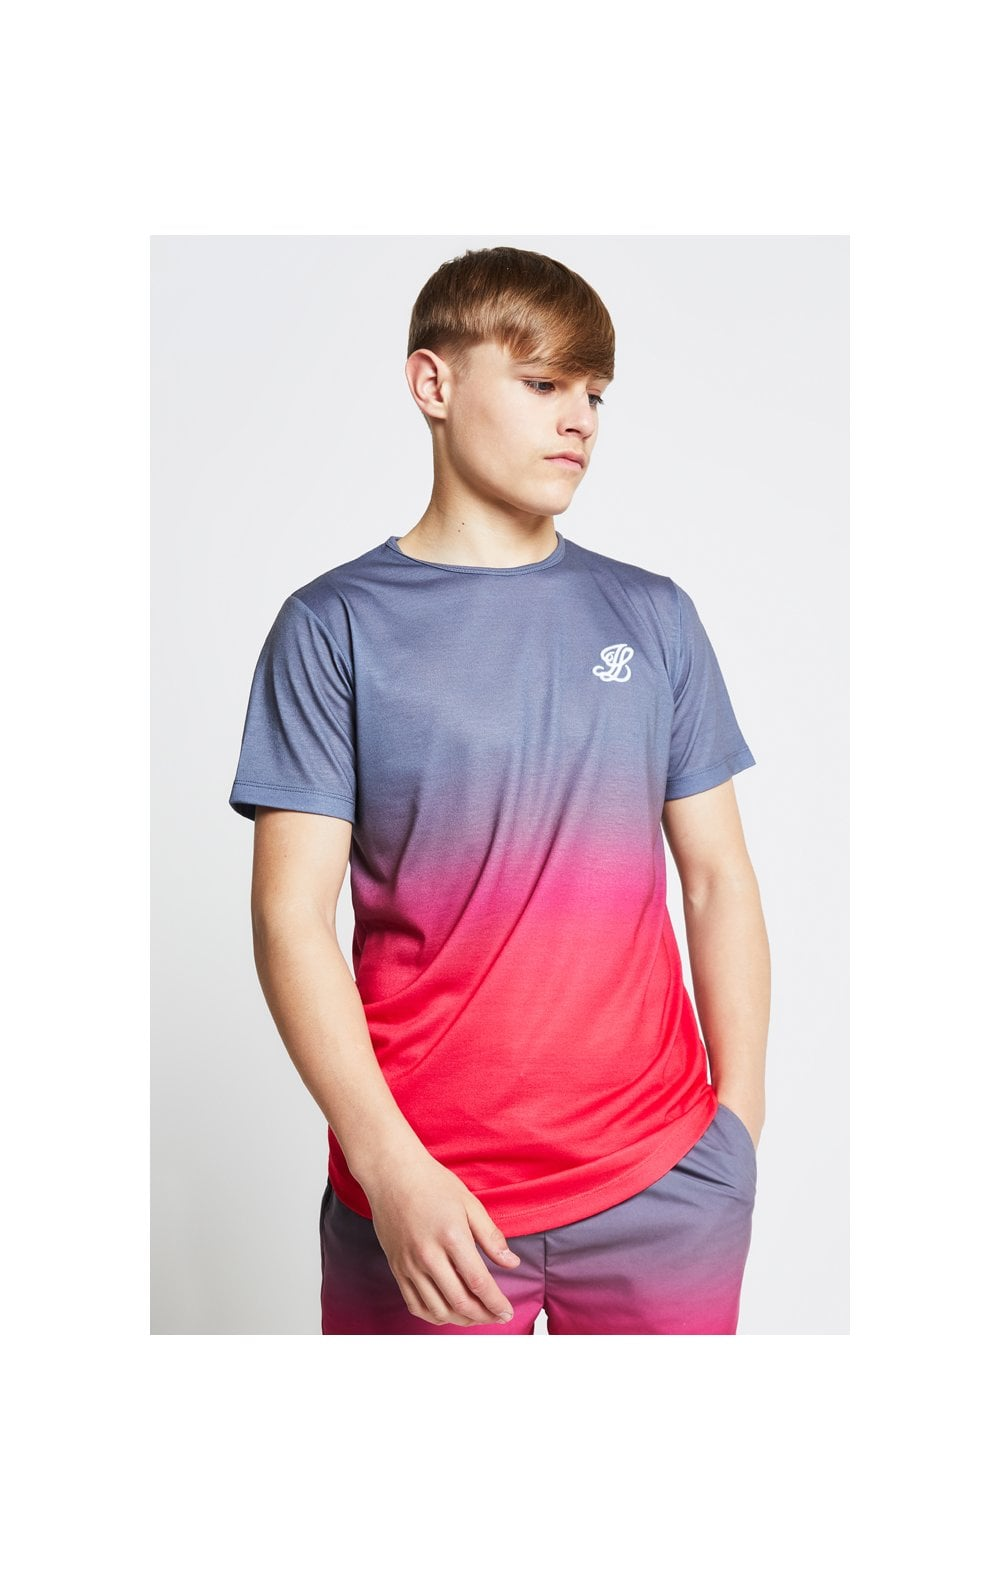 Load image into Gallery viewer, Illusive London Fade Tee - Grey & Pink (1)